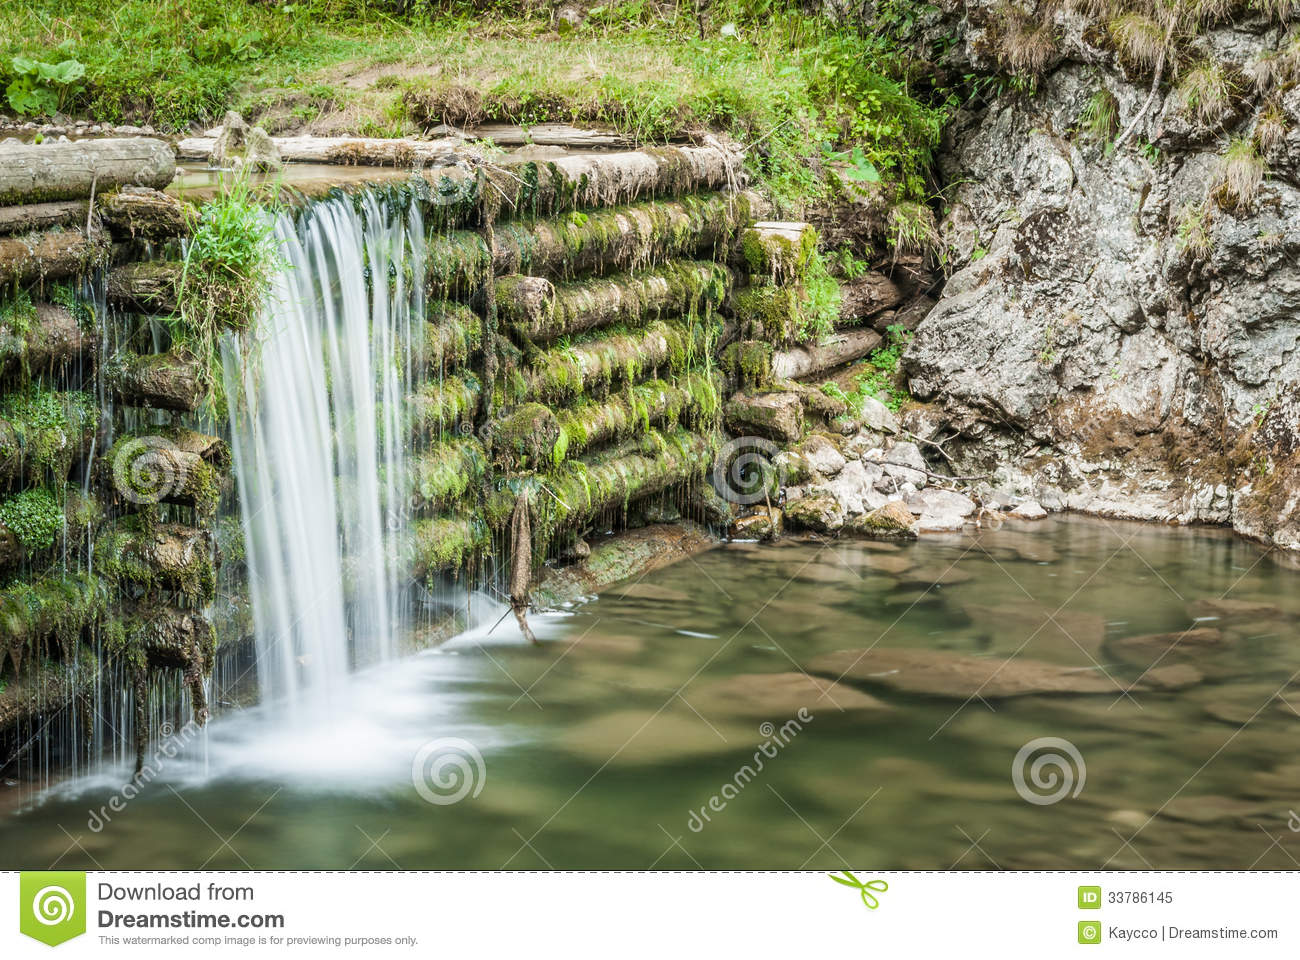 Man Made Waterfall Royalty Free Stock Photo  Image: 33786145